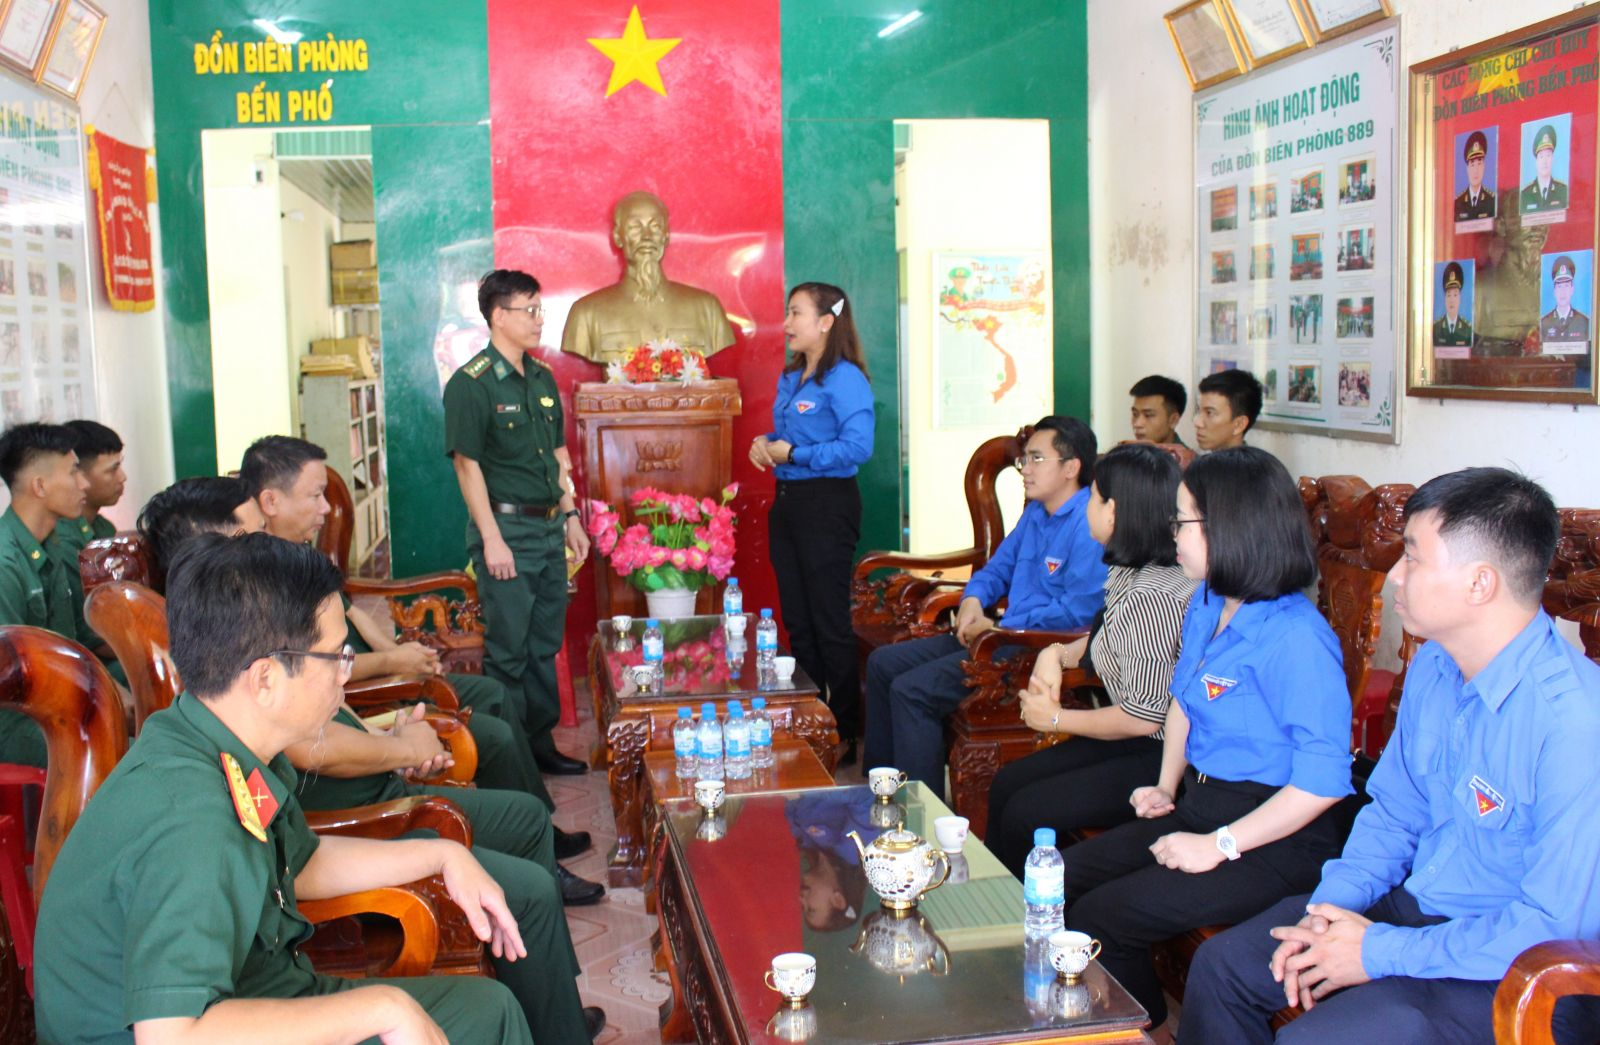 Ben Pho Border Guard Station is visited and given gifts